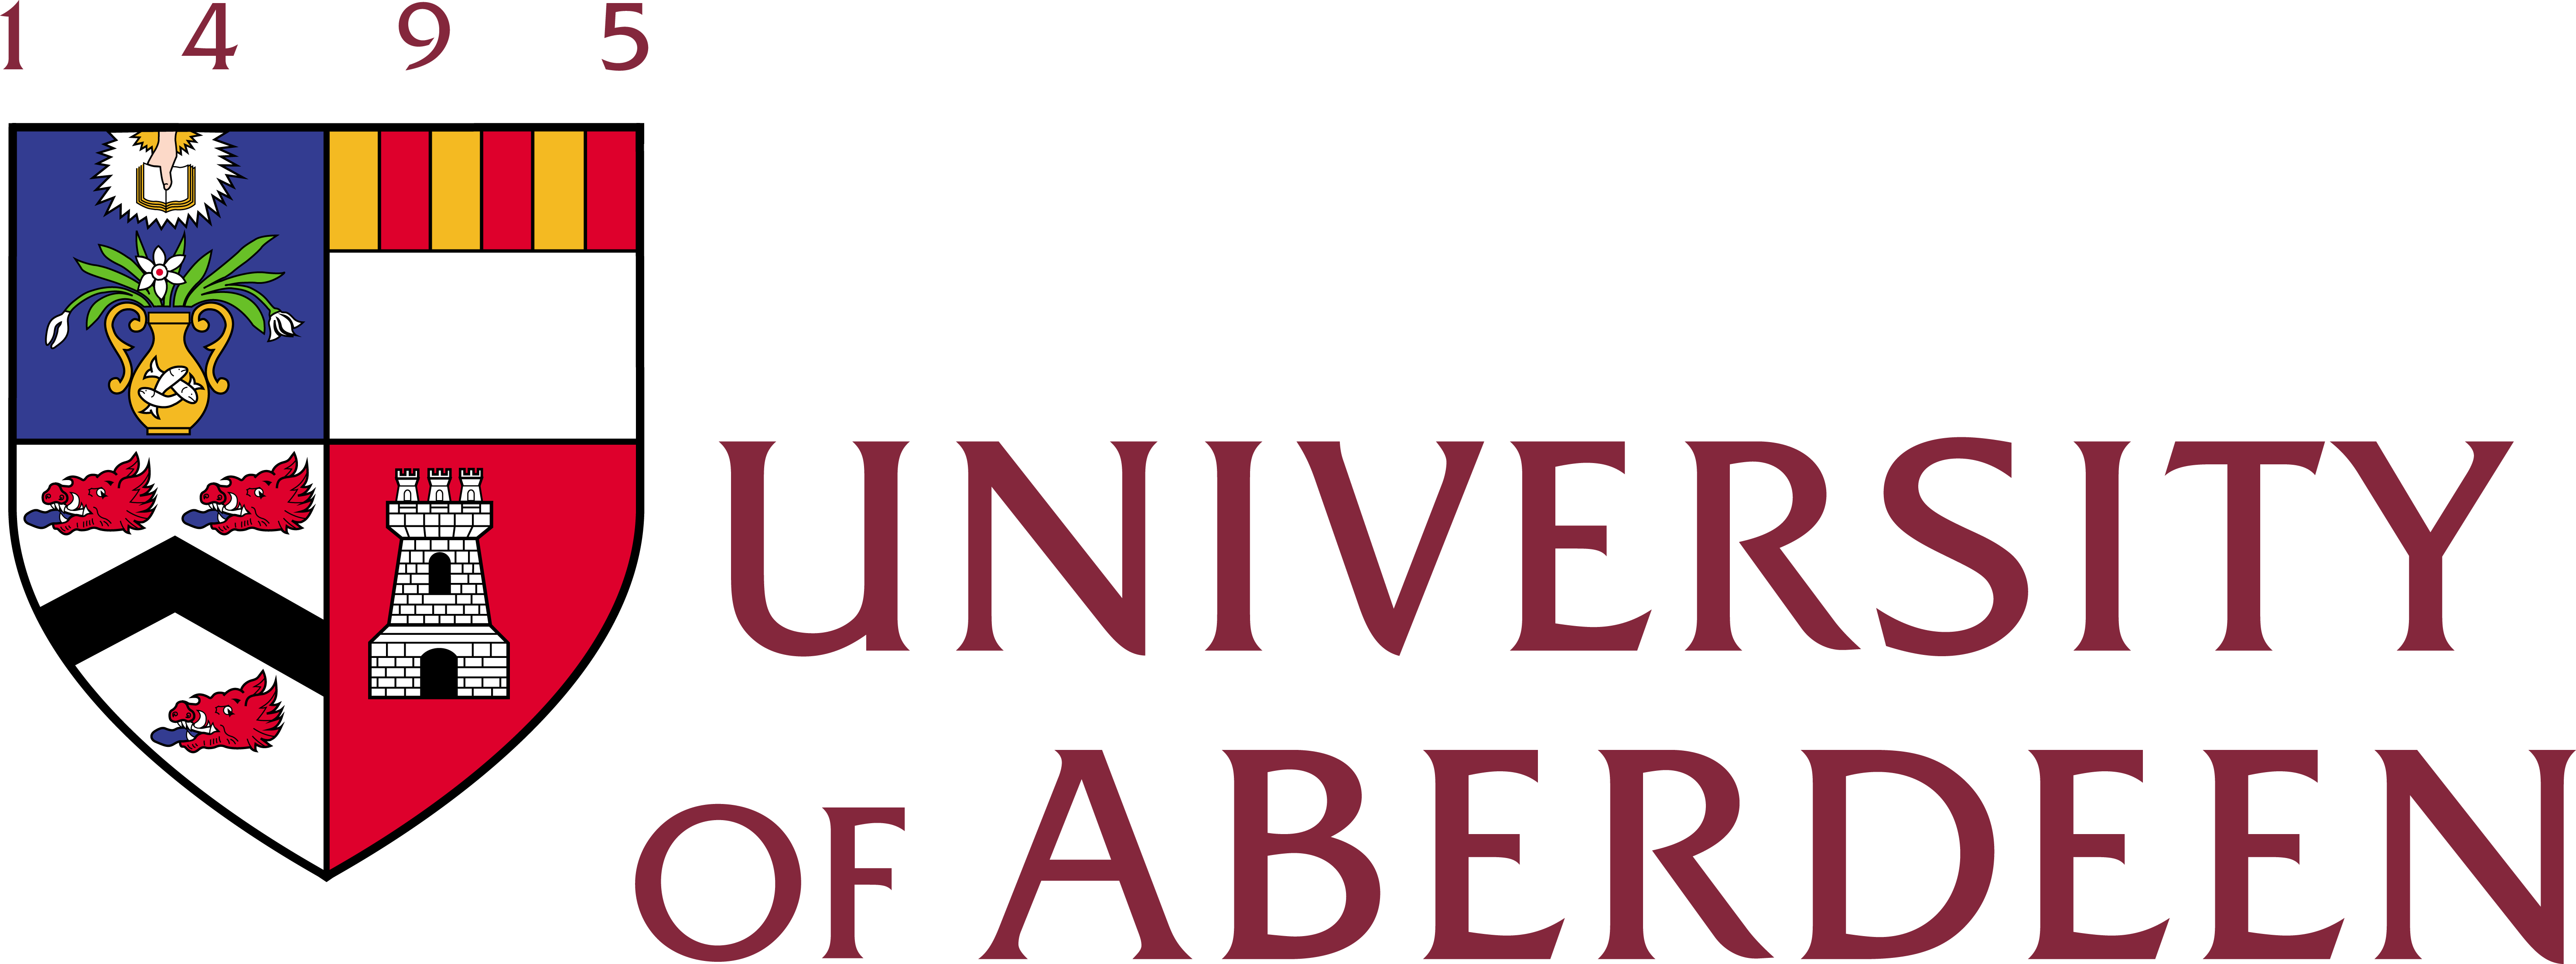 University of Aberdeen, UK